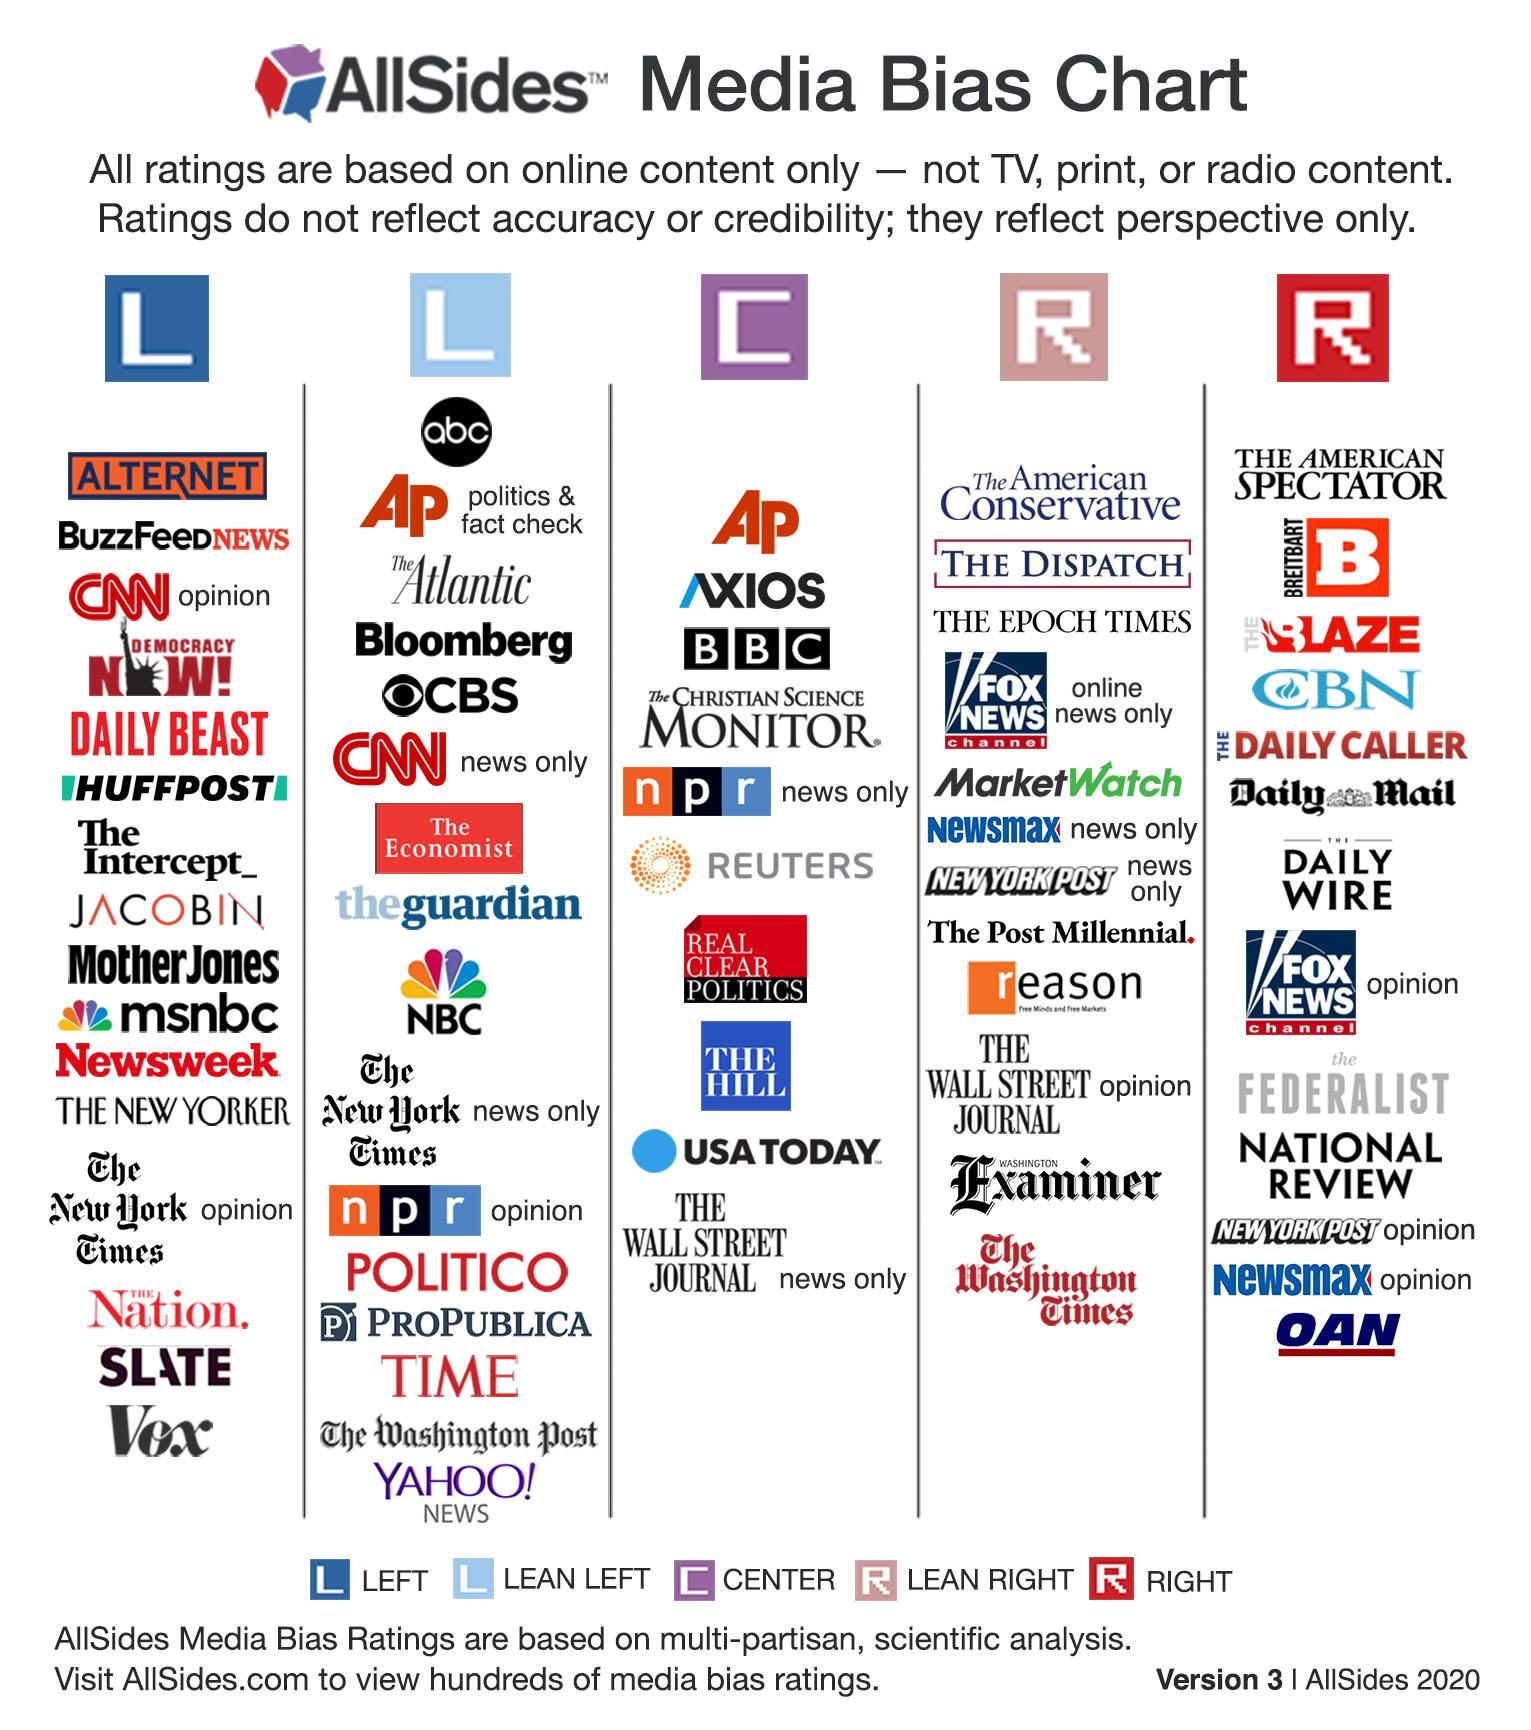 Image shows various online news content providers organized into categories reflecting media bias, left center or right